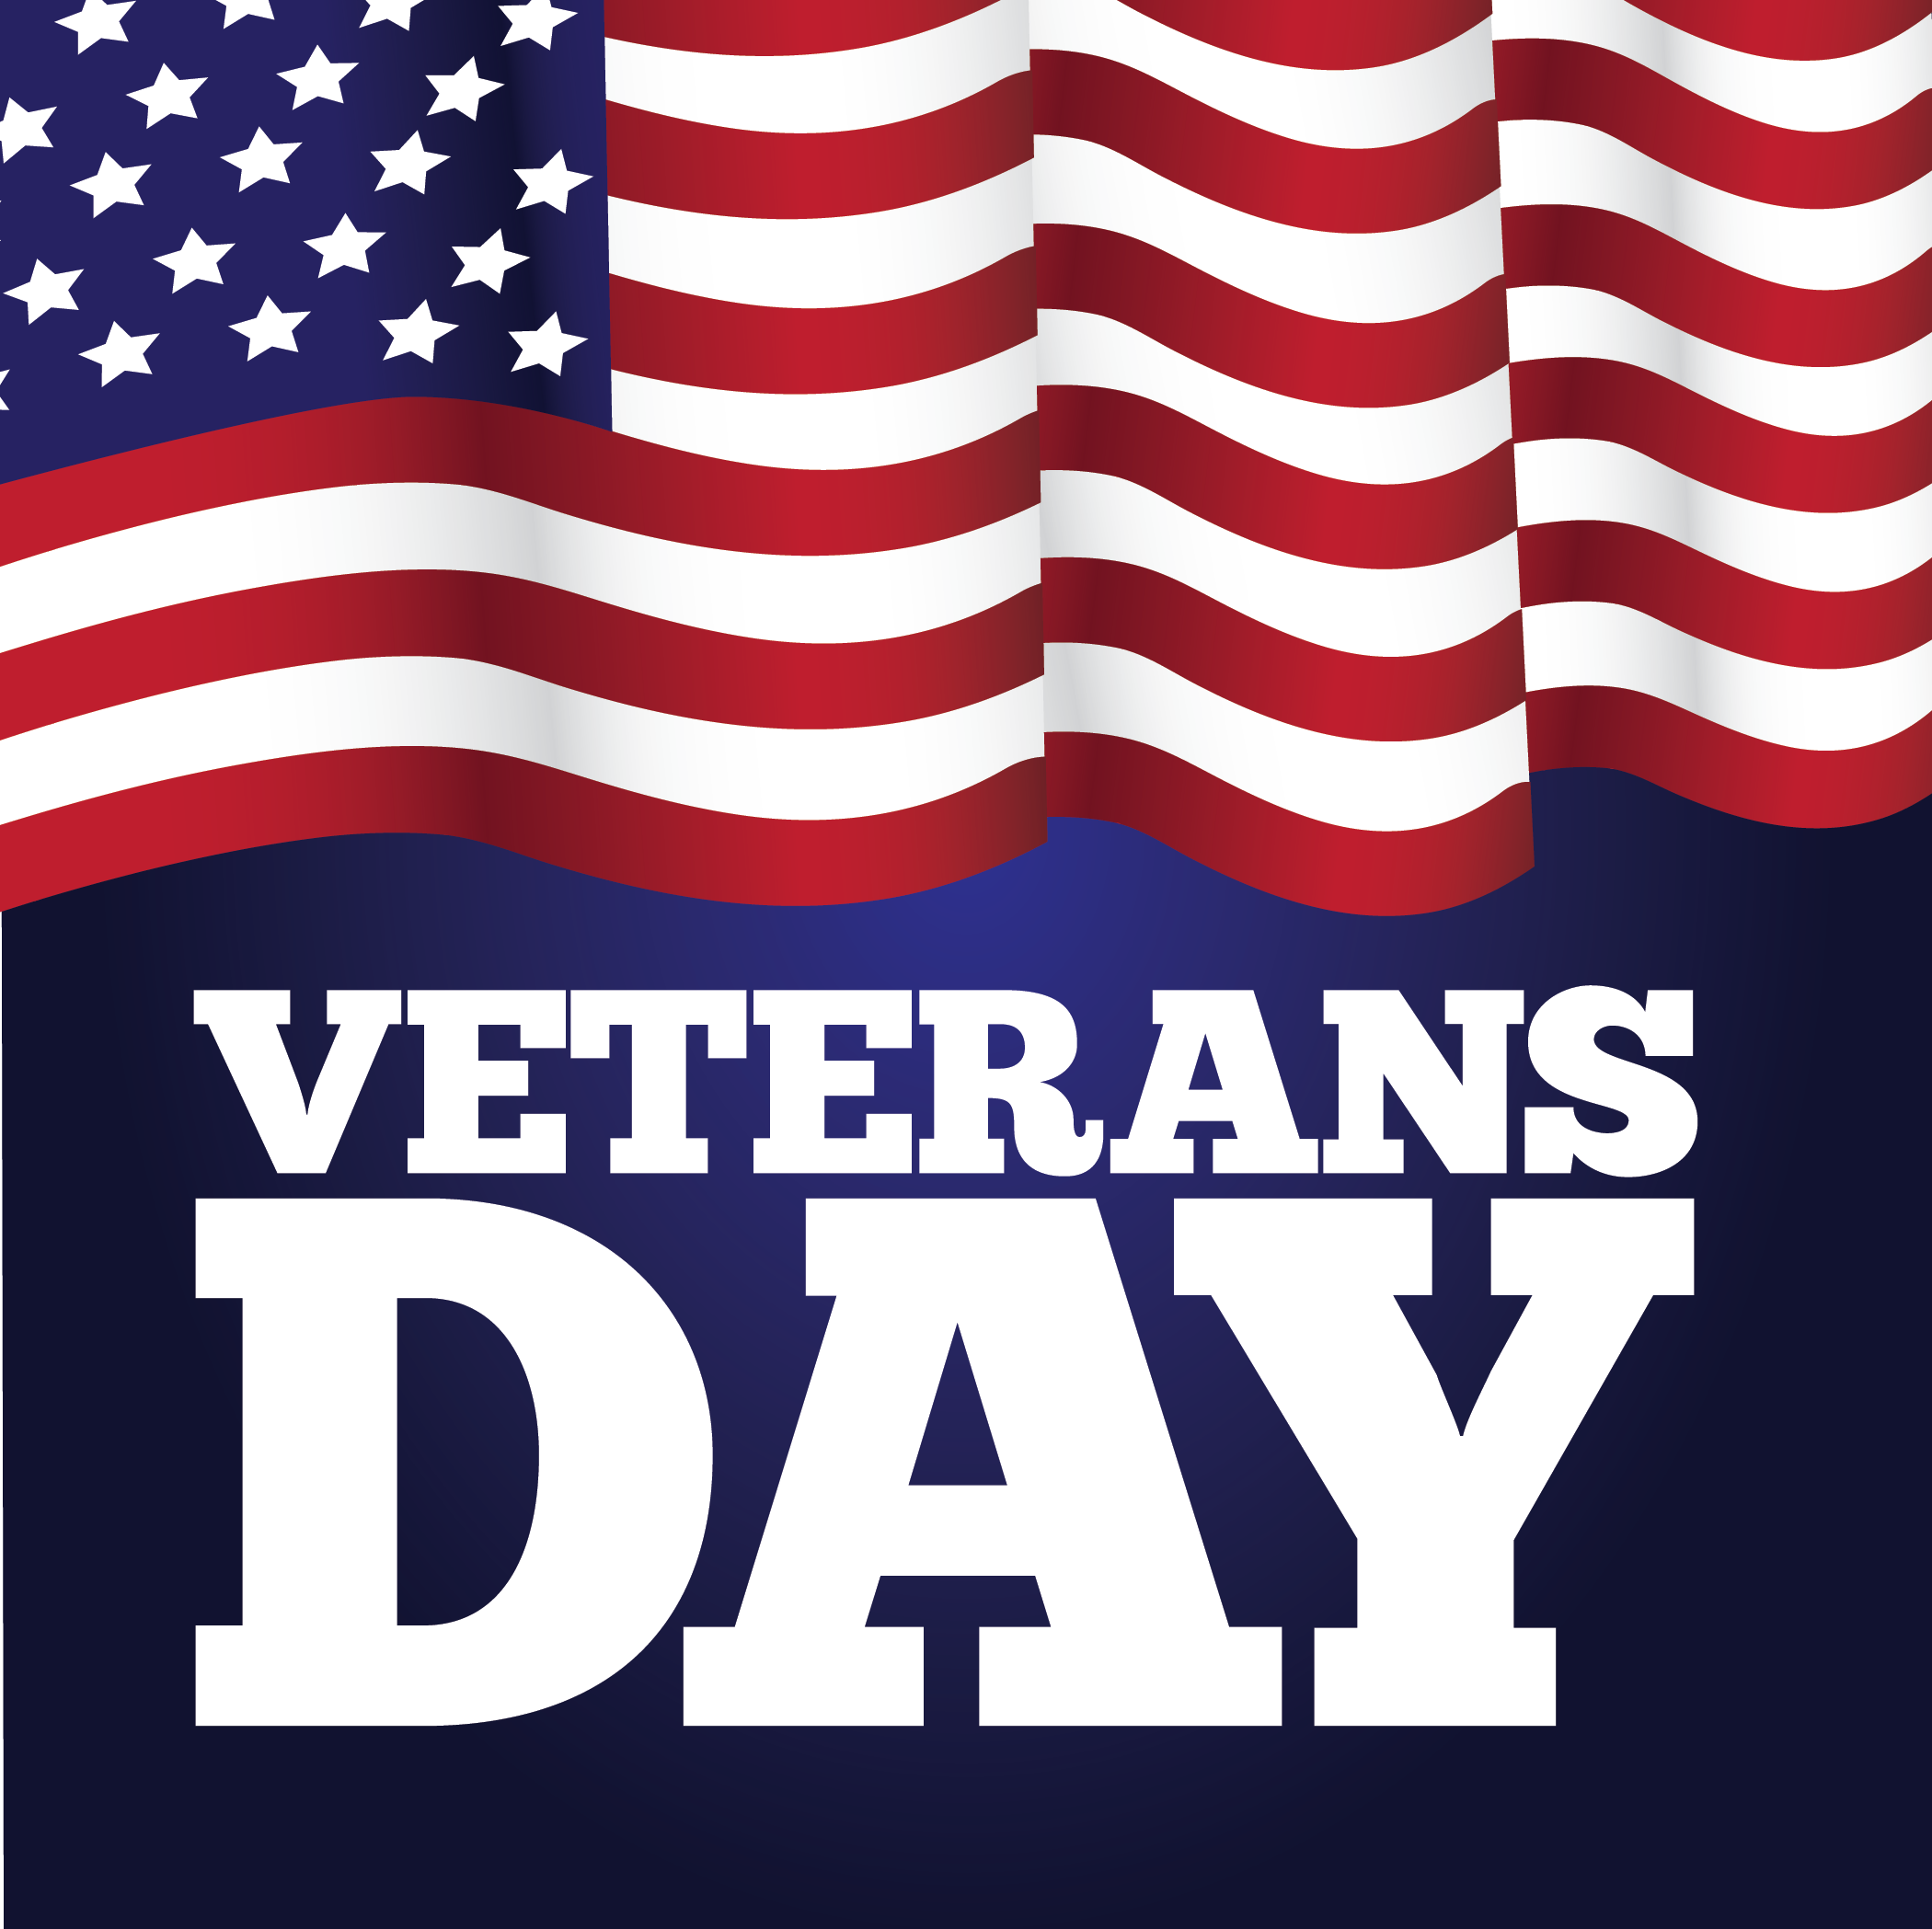 This veterans day lets all make sure we give back to the ones that have sacrificed so much to help make our country the greatest place on the planet. There is an estimated 40,000 homeless veterans on any given night in the United States of Americaaccording to a report from the National Alliance to